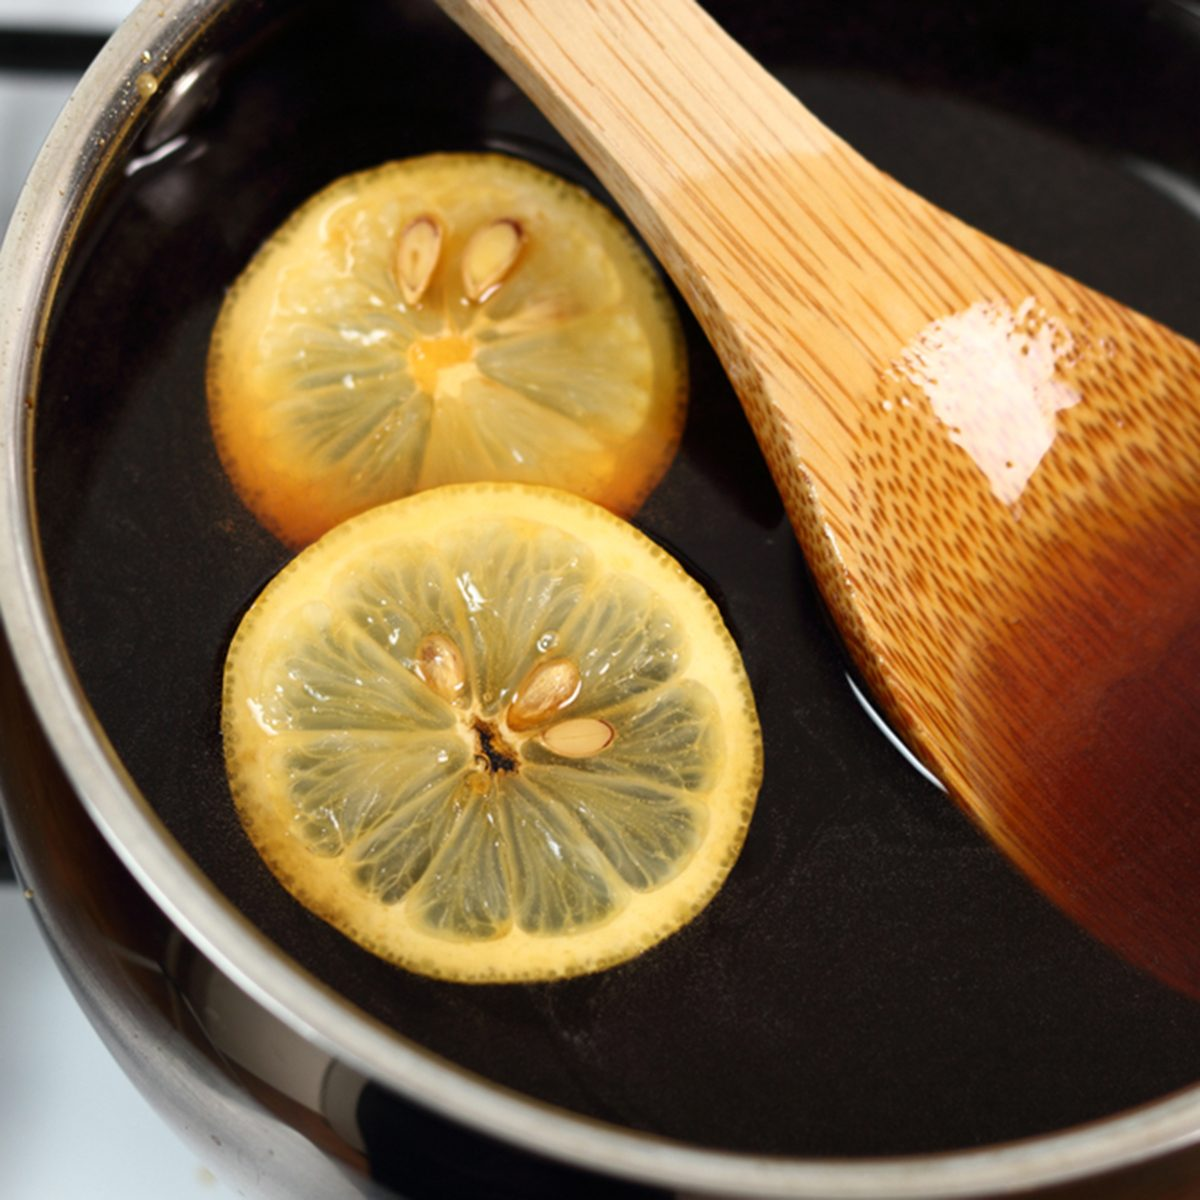 Syrup and Lemon Slices.